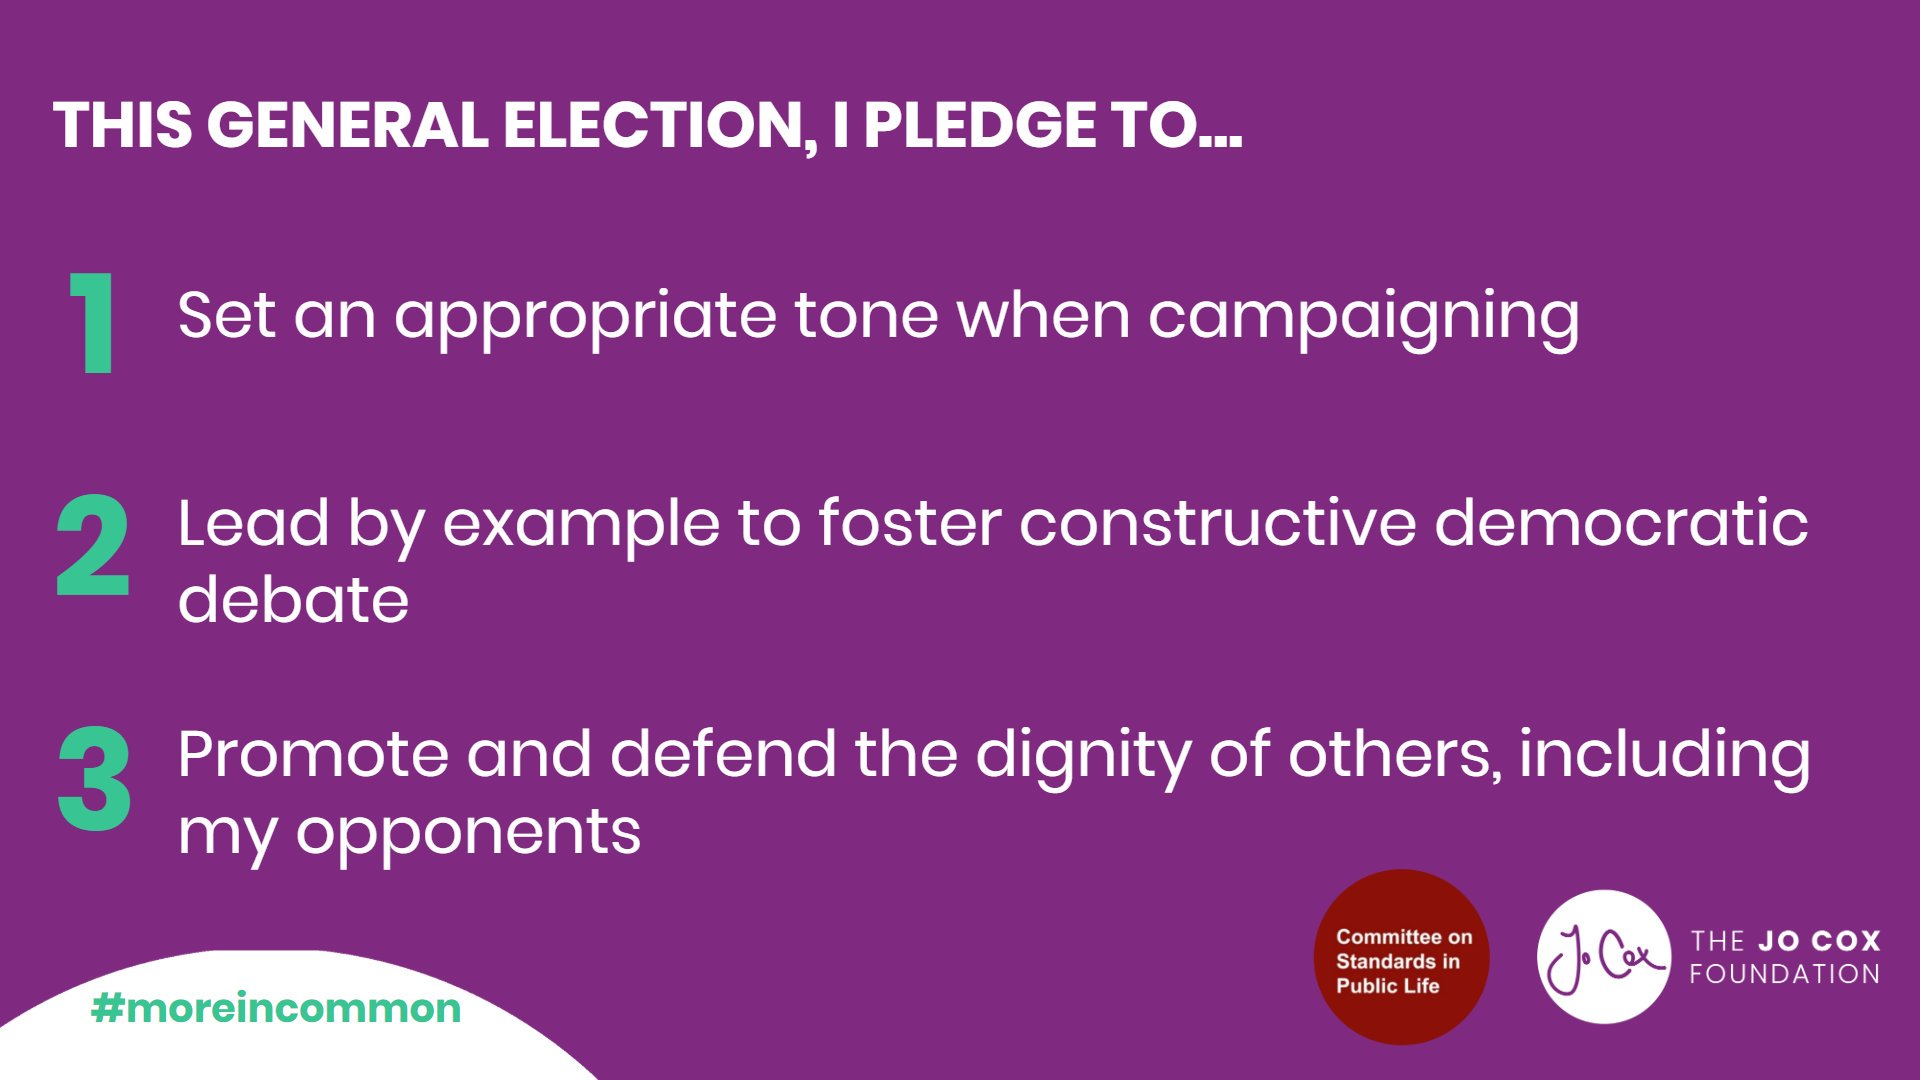 This #GE2019 we are calling on all candidates to participate in a respectful campaign. We encourage them to share this strong, positive message of kindness and #moreincommon.